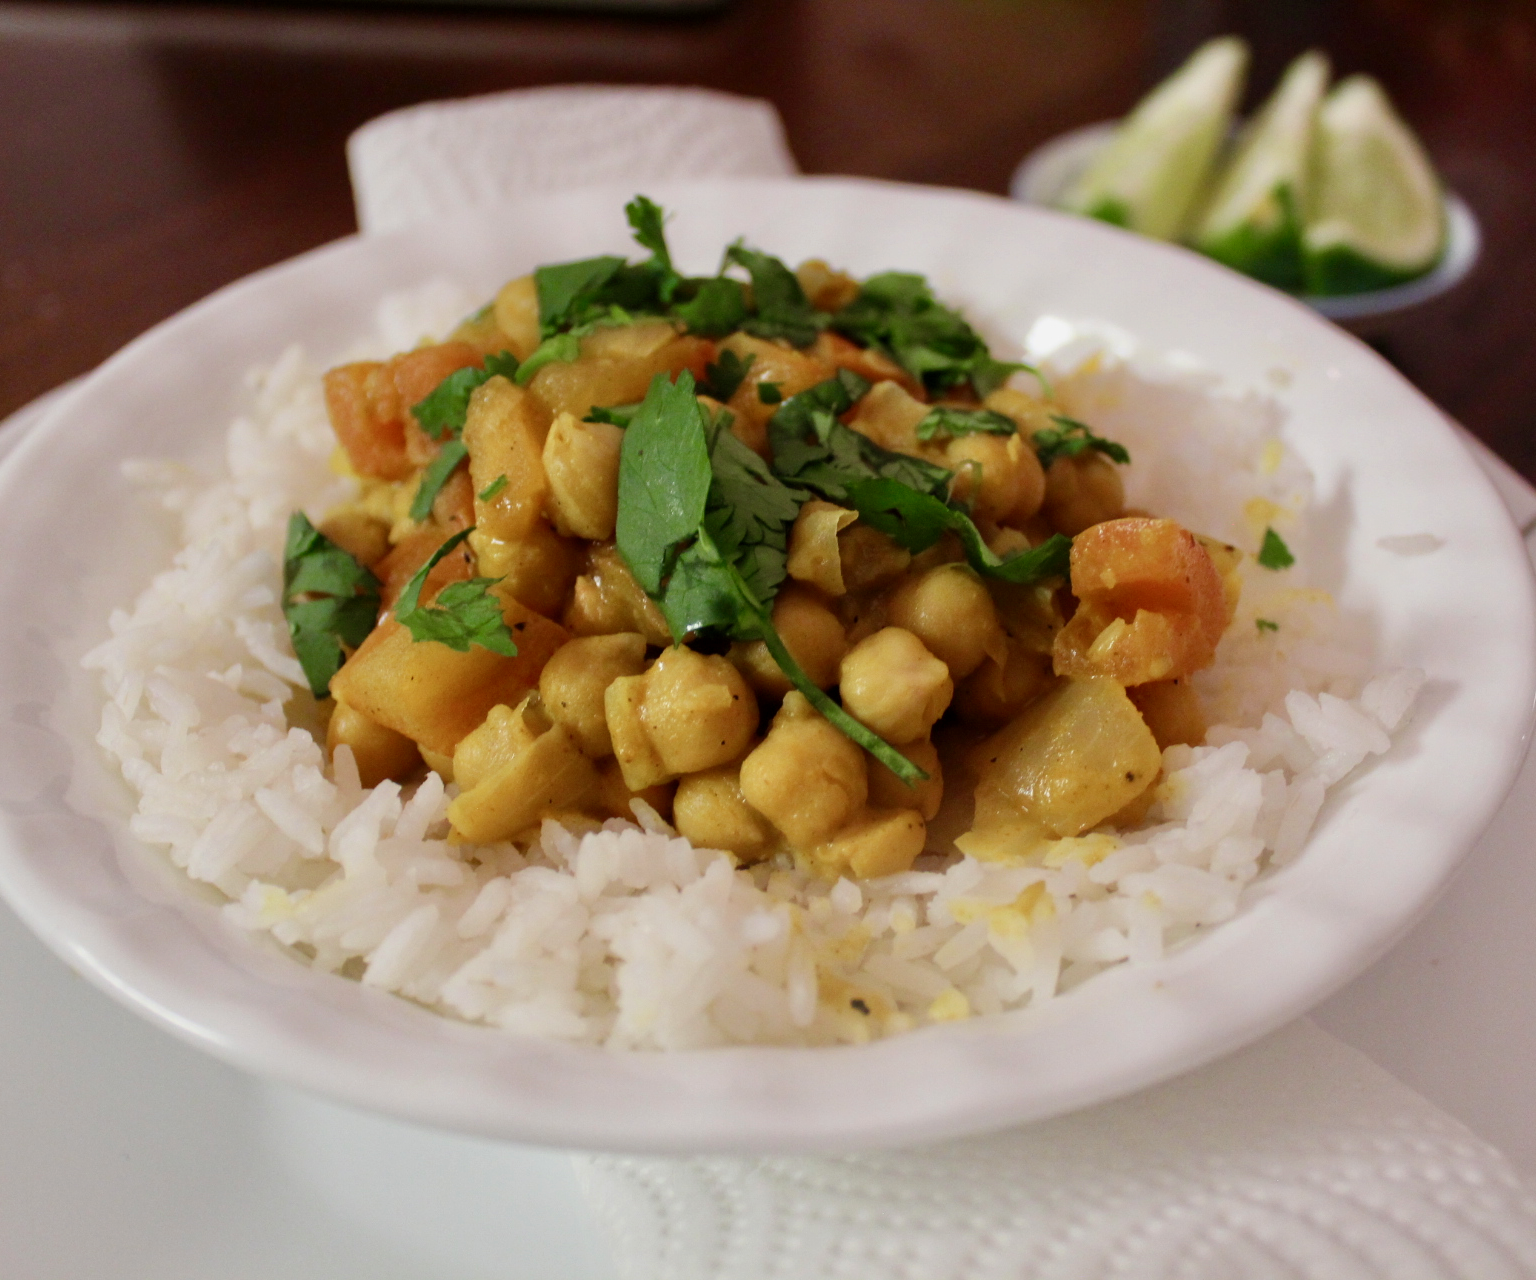 Creamy Coconut Chickpea Curry (Vegan and Gluten Free)